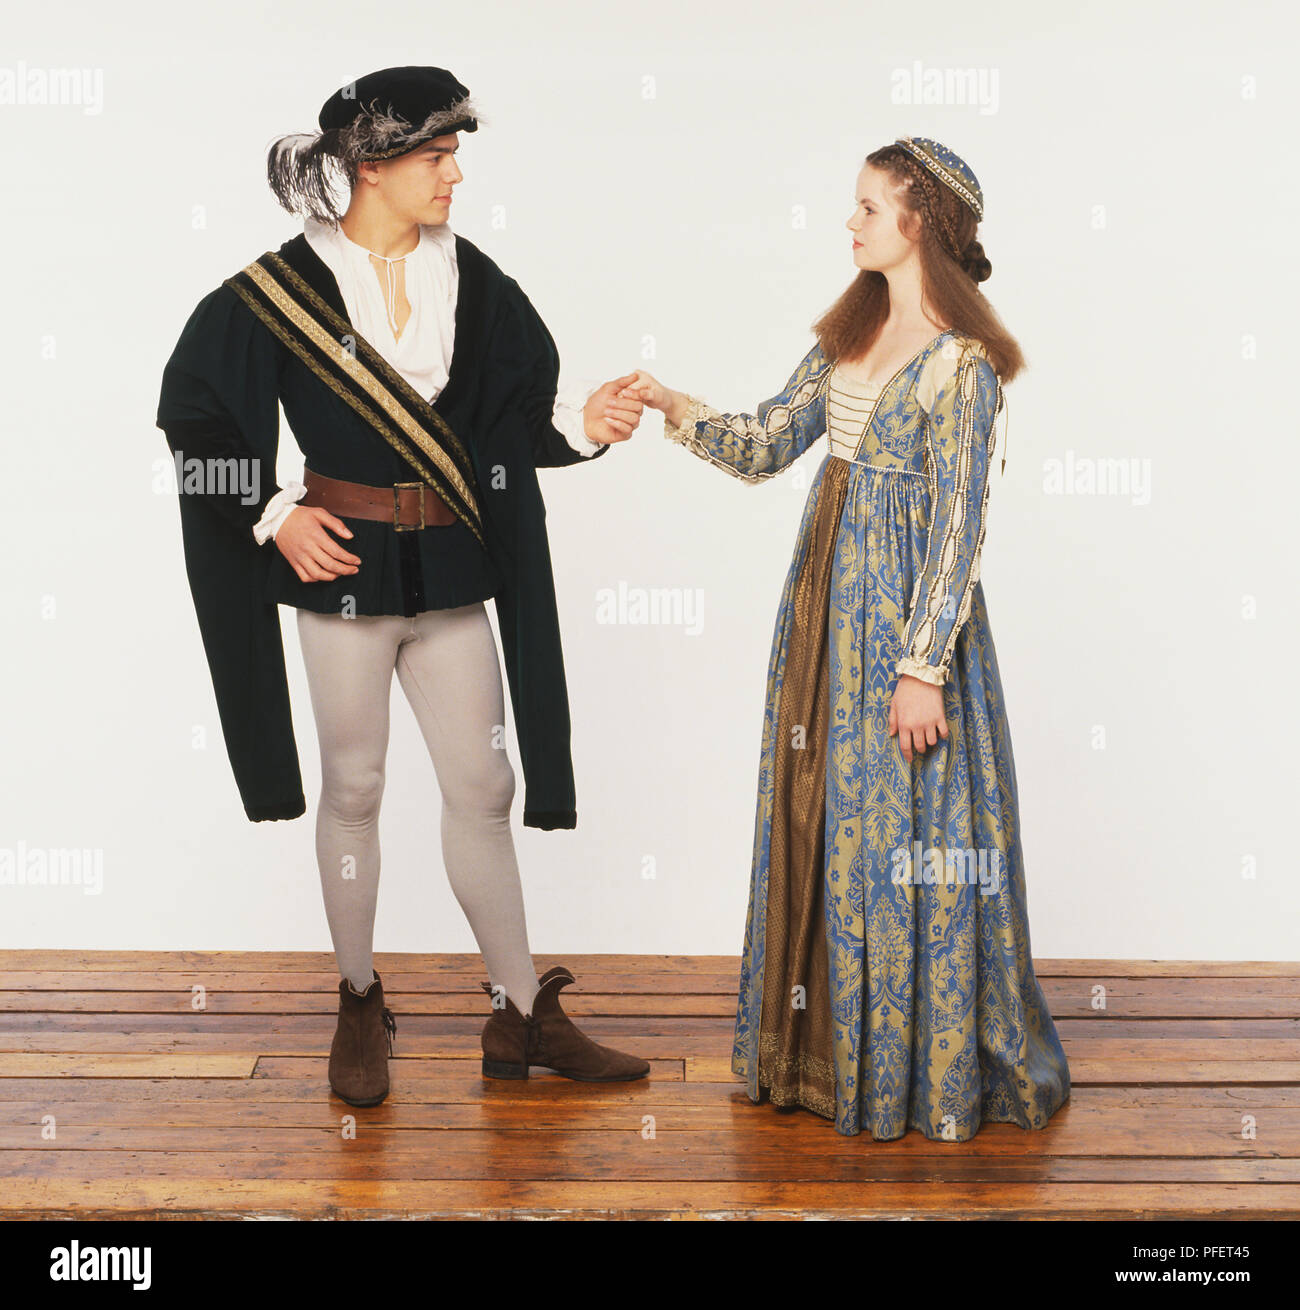 Man and woman dressed in 16th century clothing Stock Photo